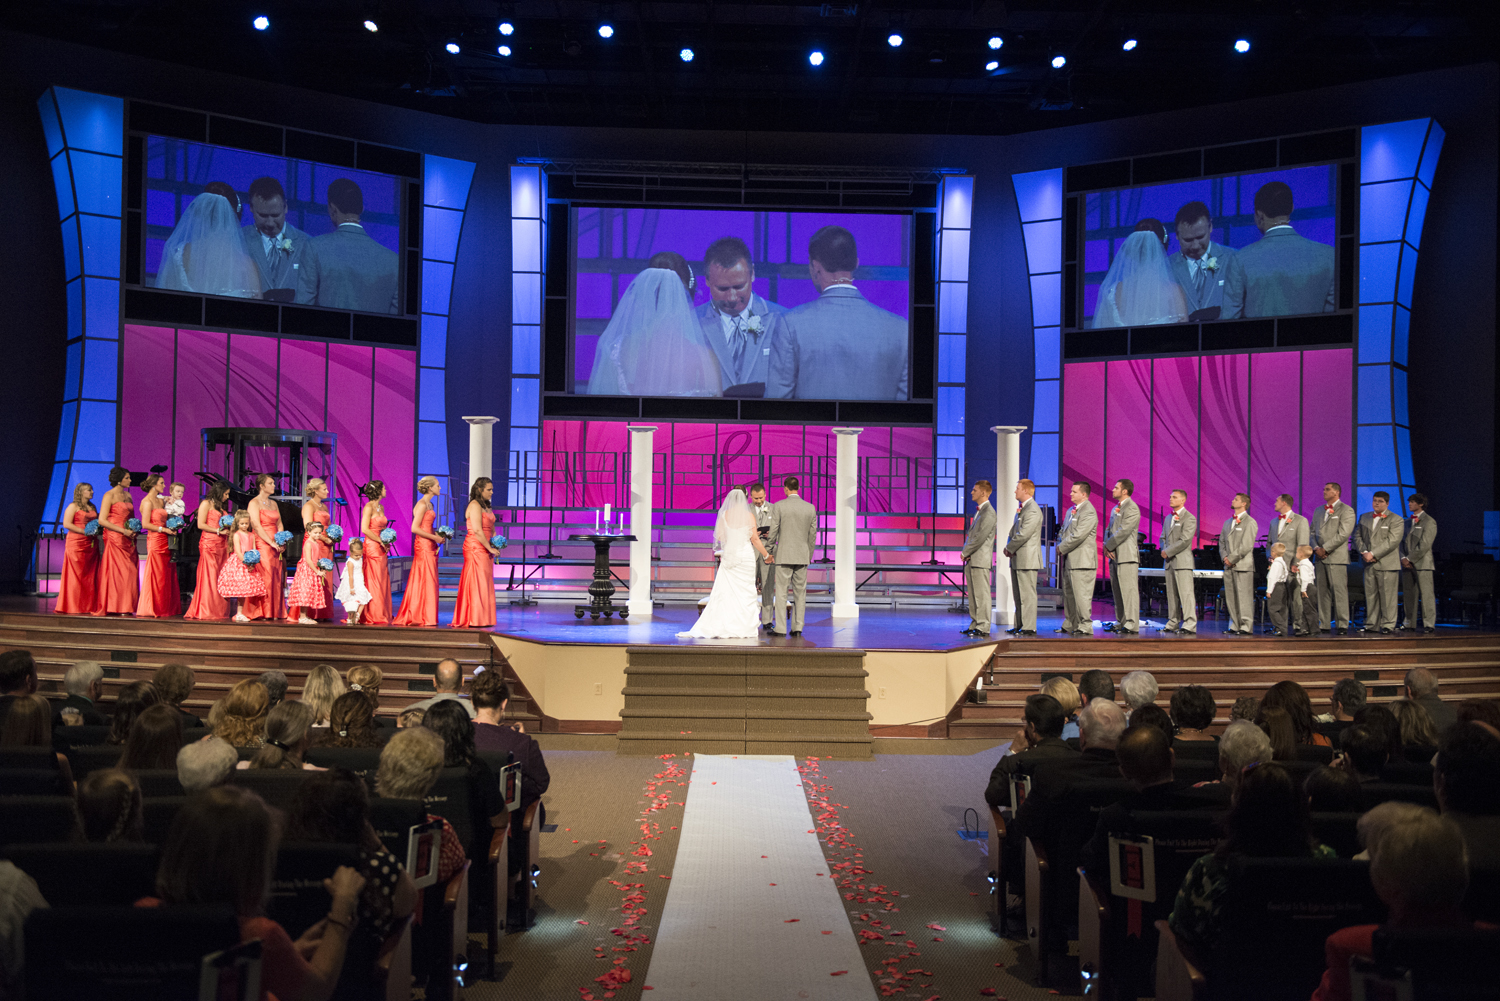 Coral and navy wedding ceremony at Liberty Baptist Church in Hampton, Virginia